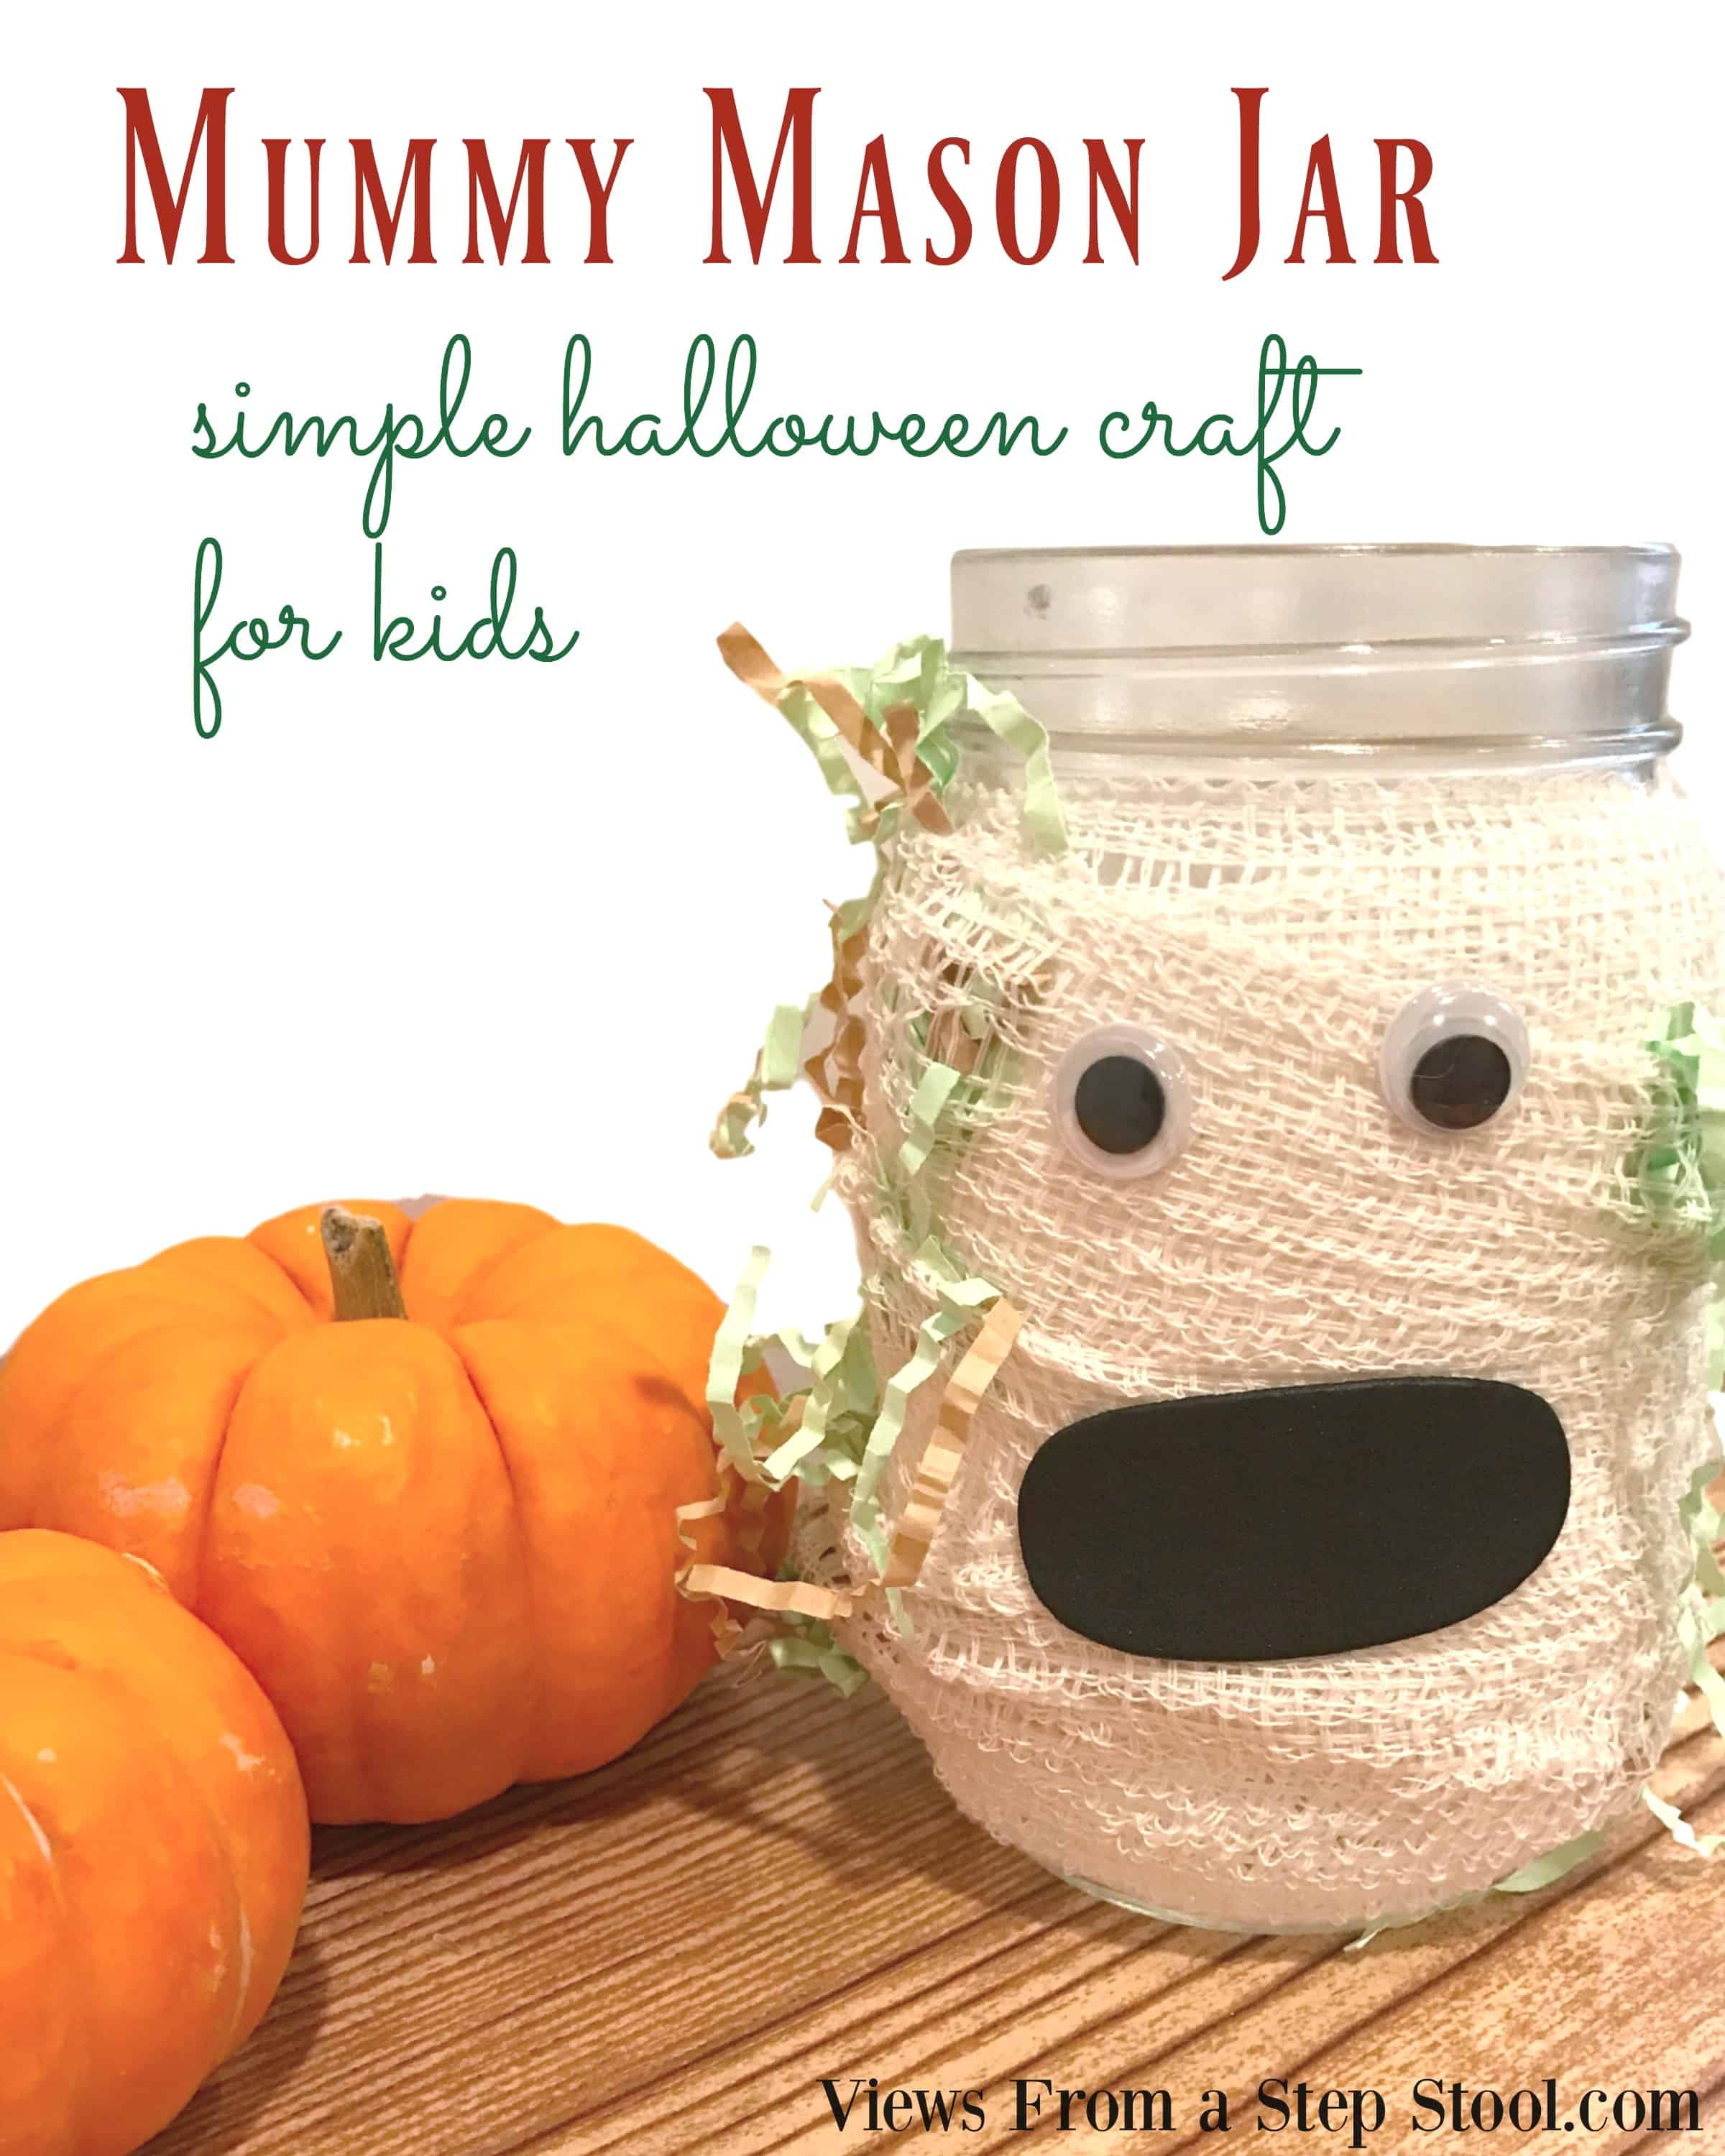 mummy-mason-jar